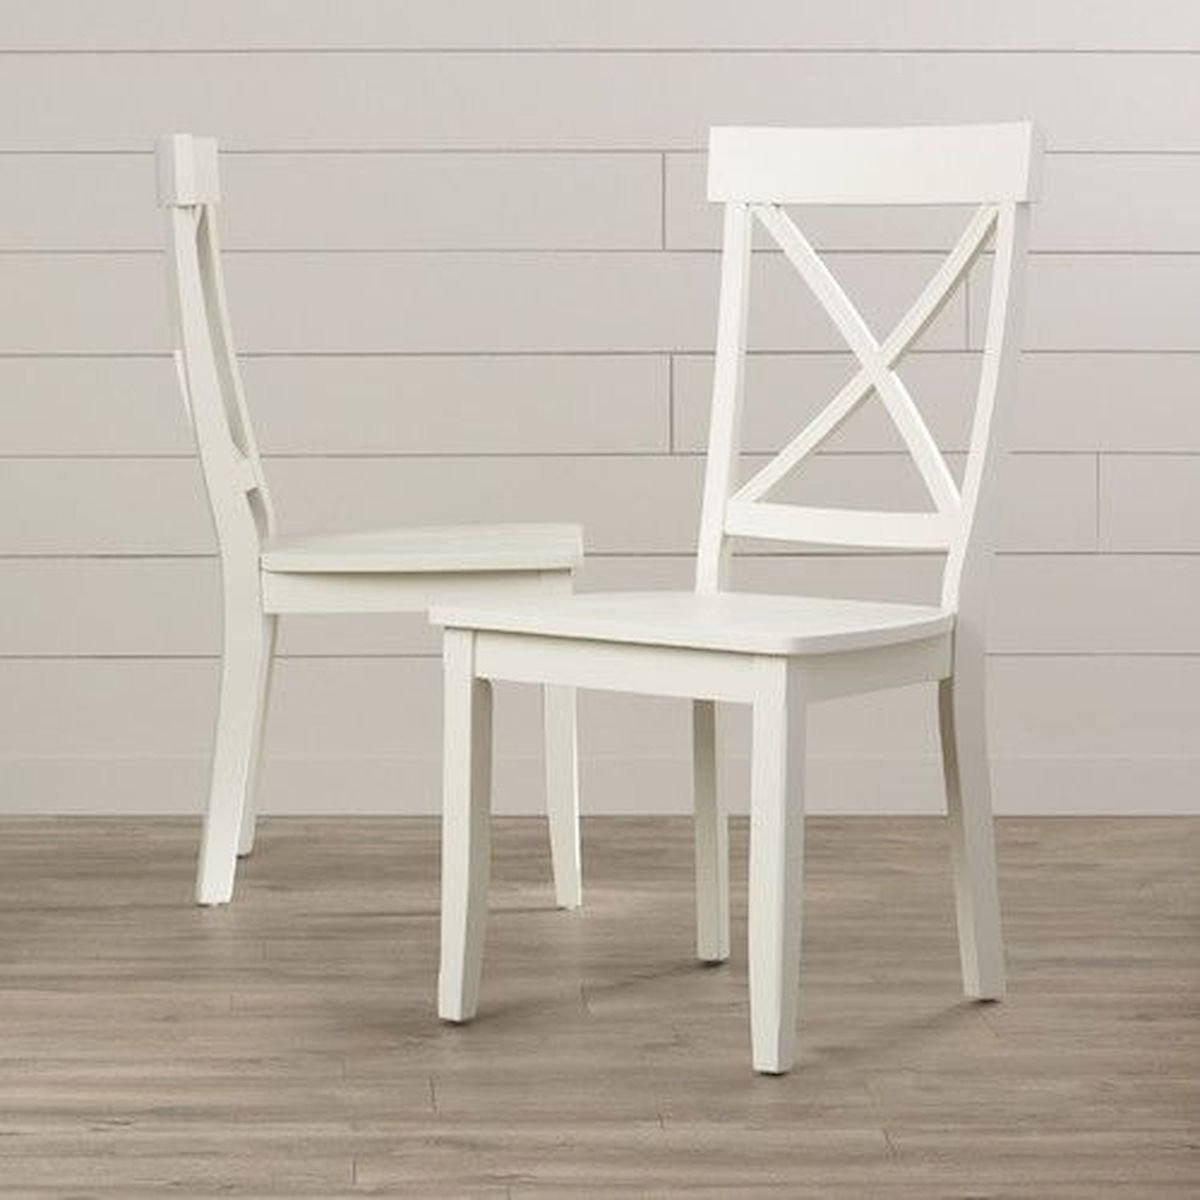 The Best Choice of Farmhouse Chairs (2)